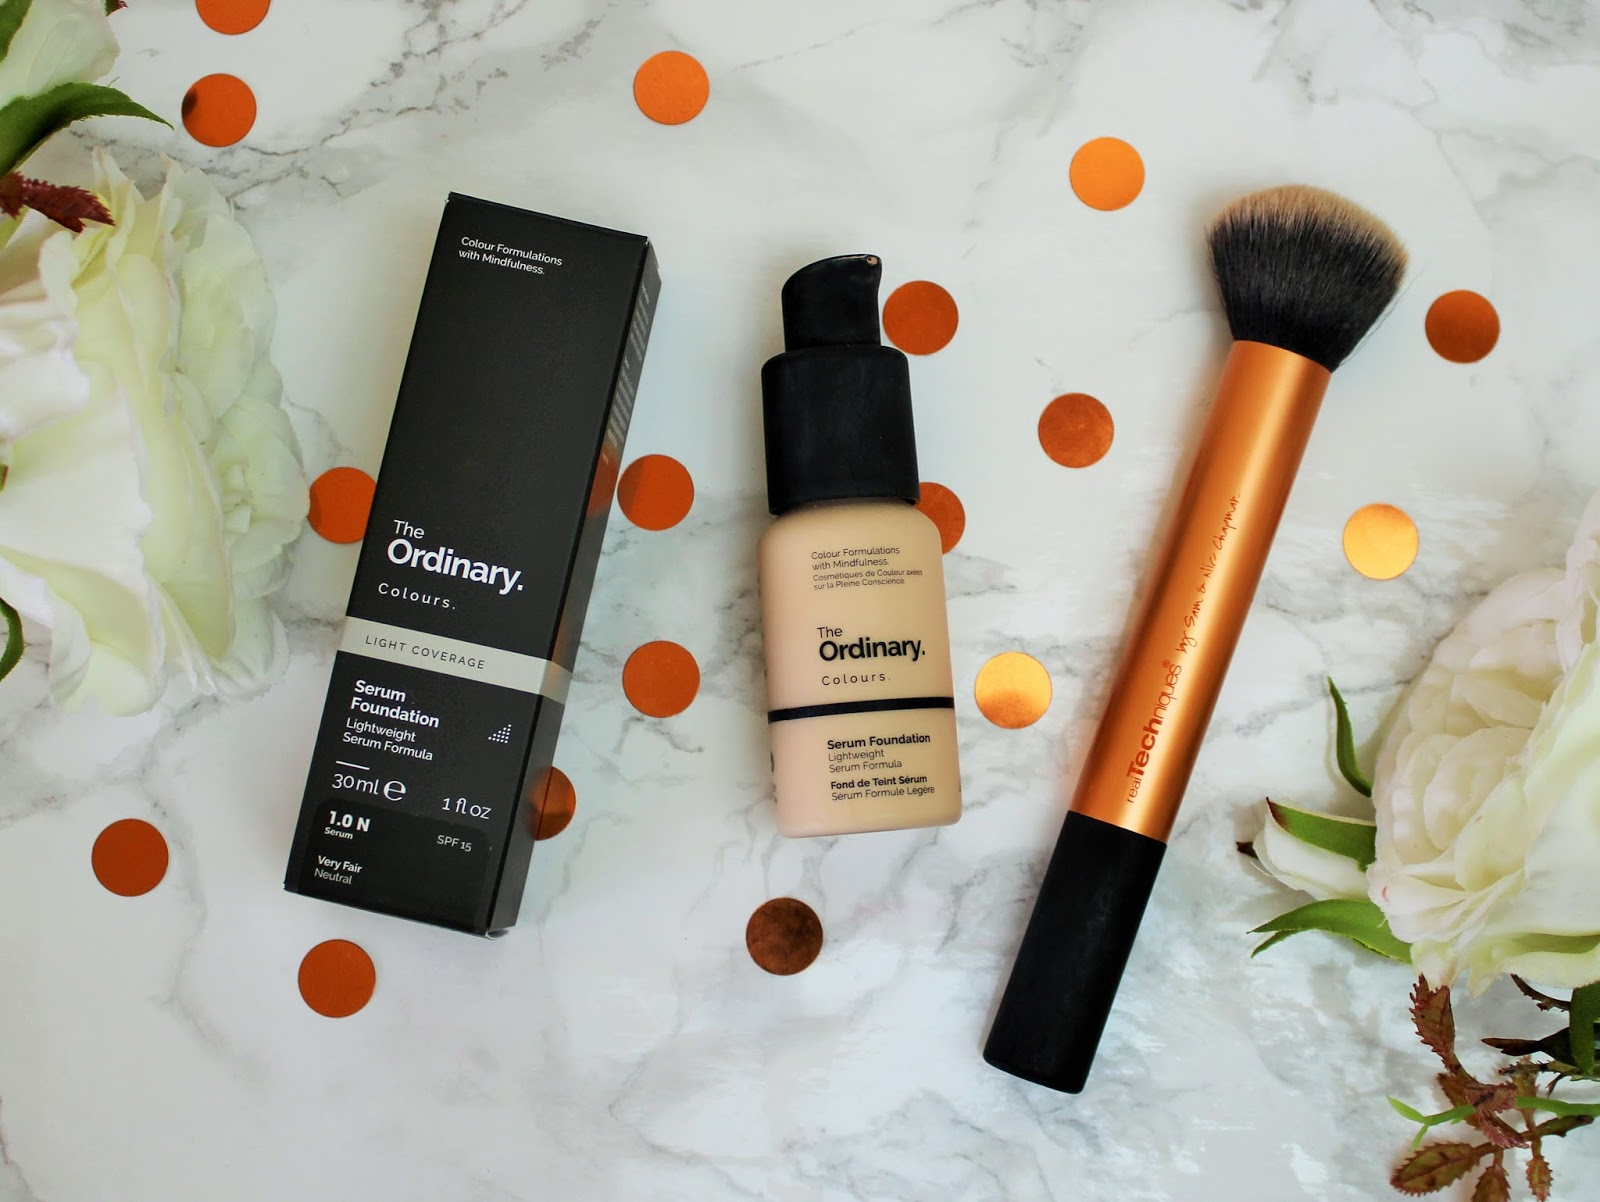 The Ordinary Serum Foundation Review - Does Your Skin Type Matter? - 1